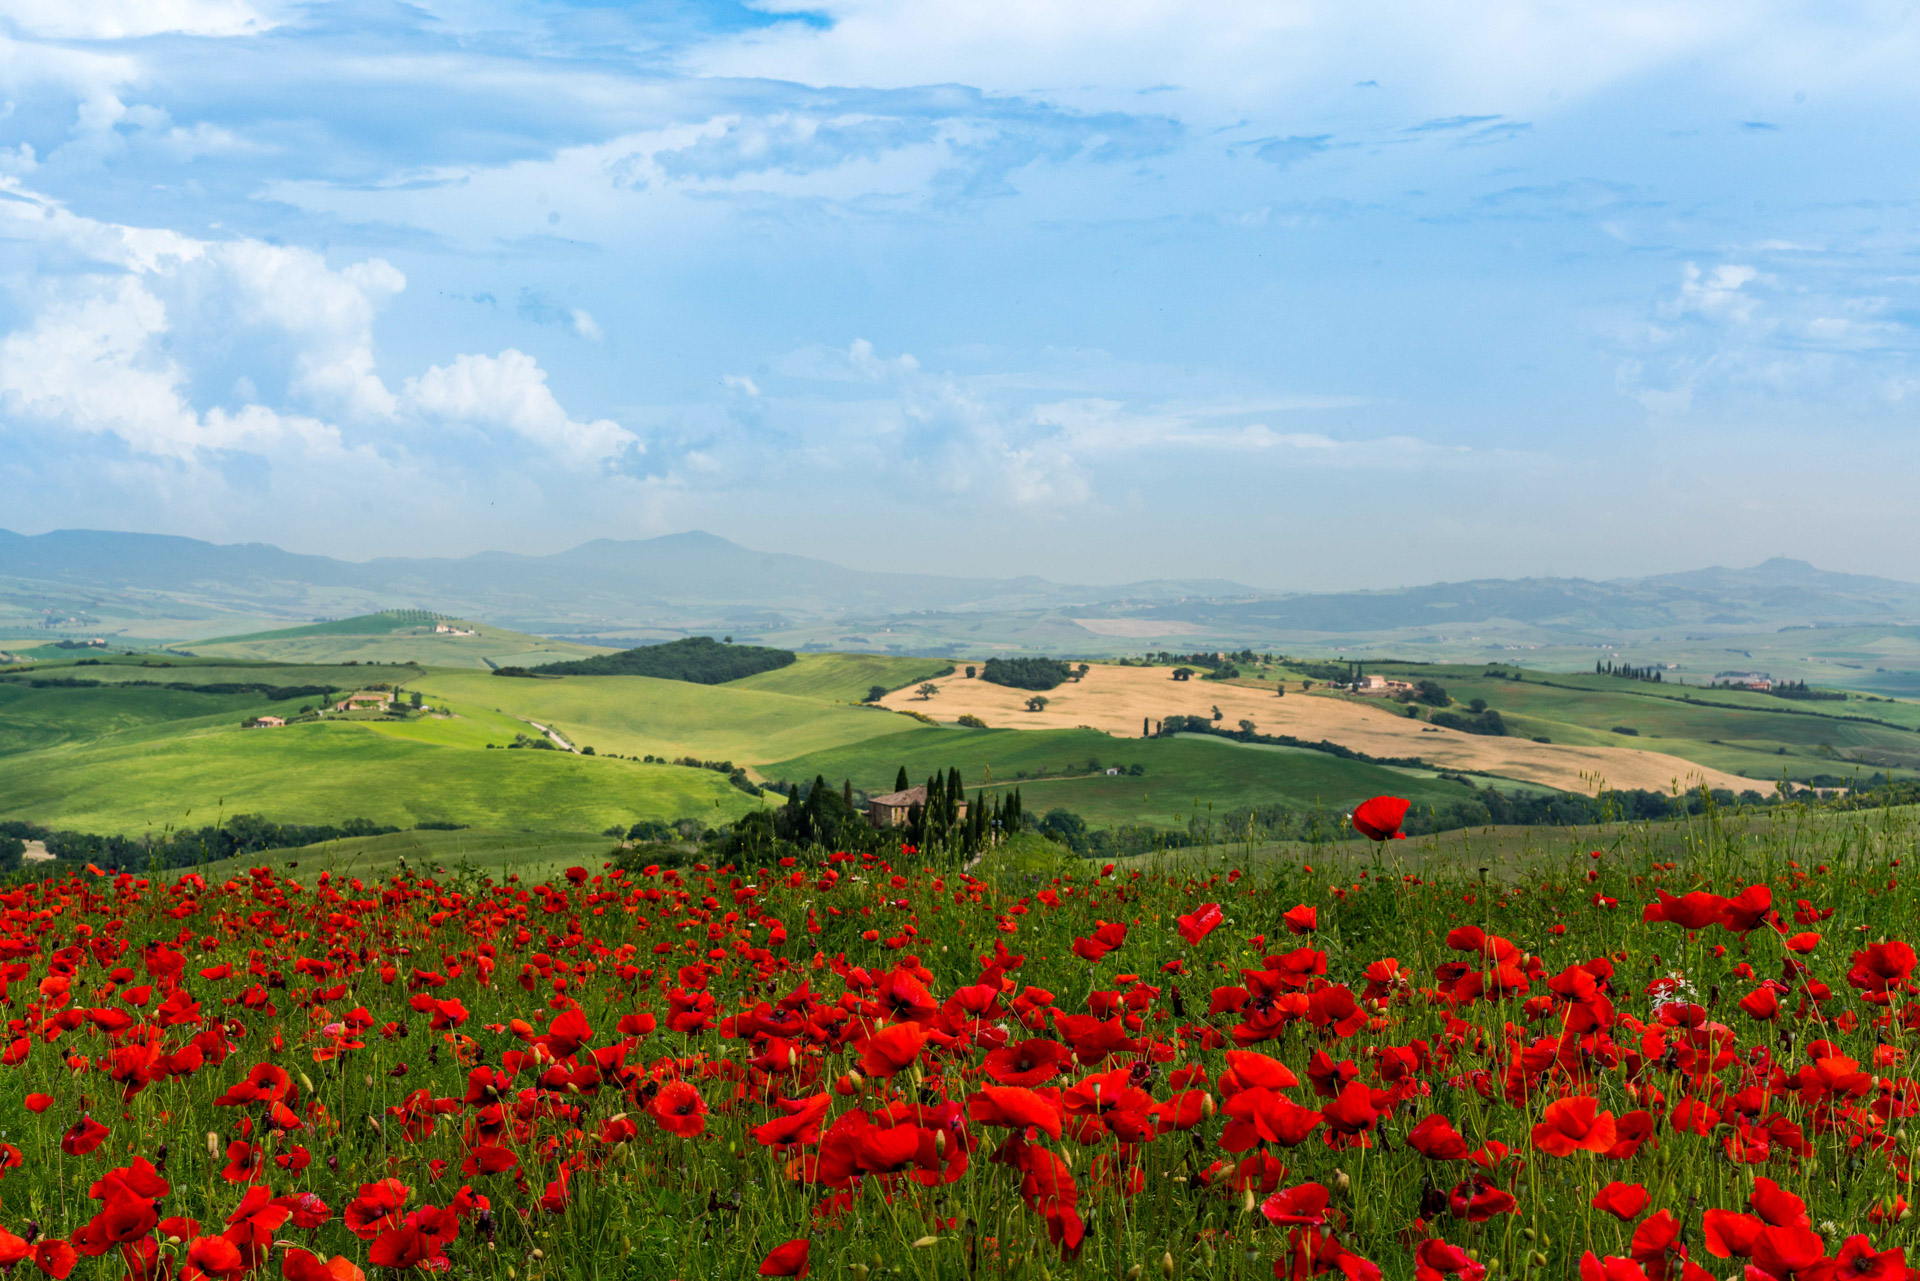 Copia di Red poppies overlooking Podere Belvedere.jpg